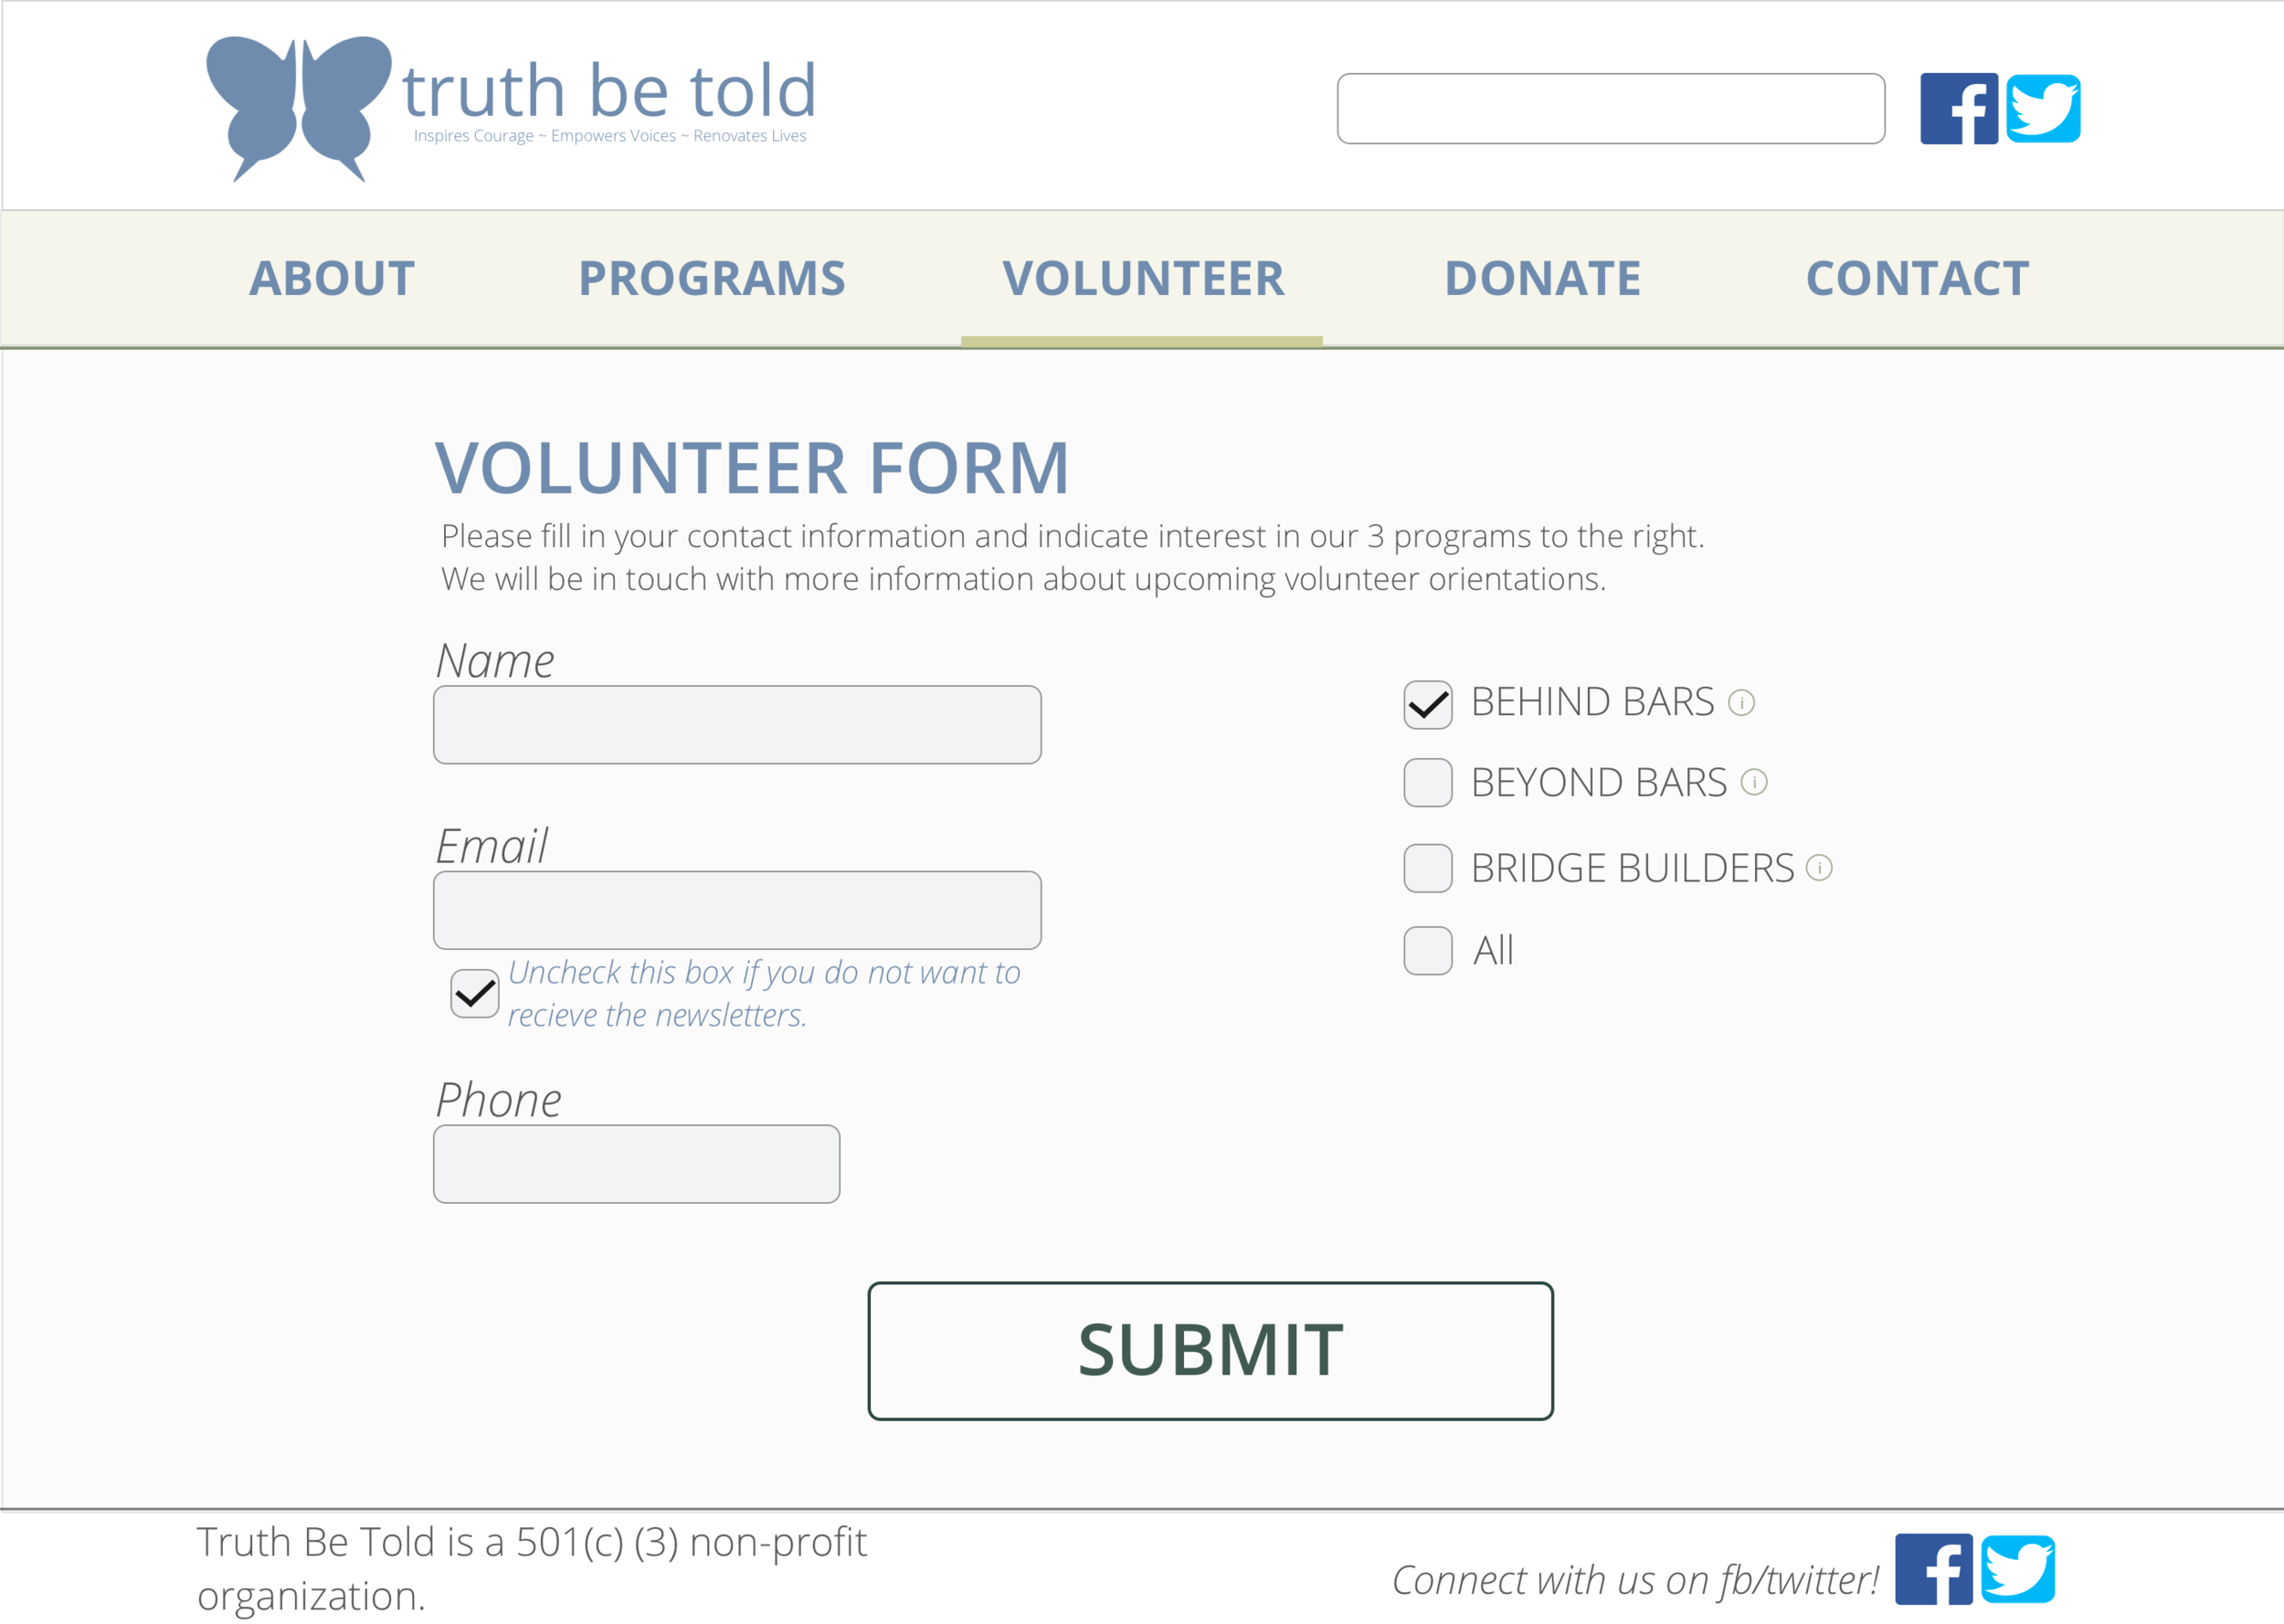 4-volunteer-form-checked@2x.png